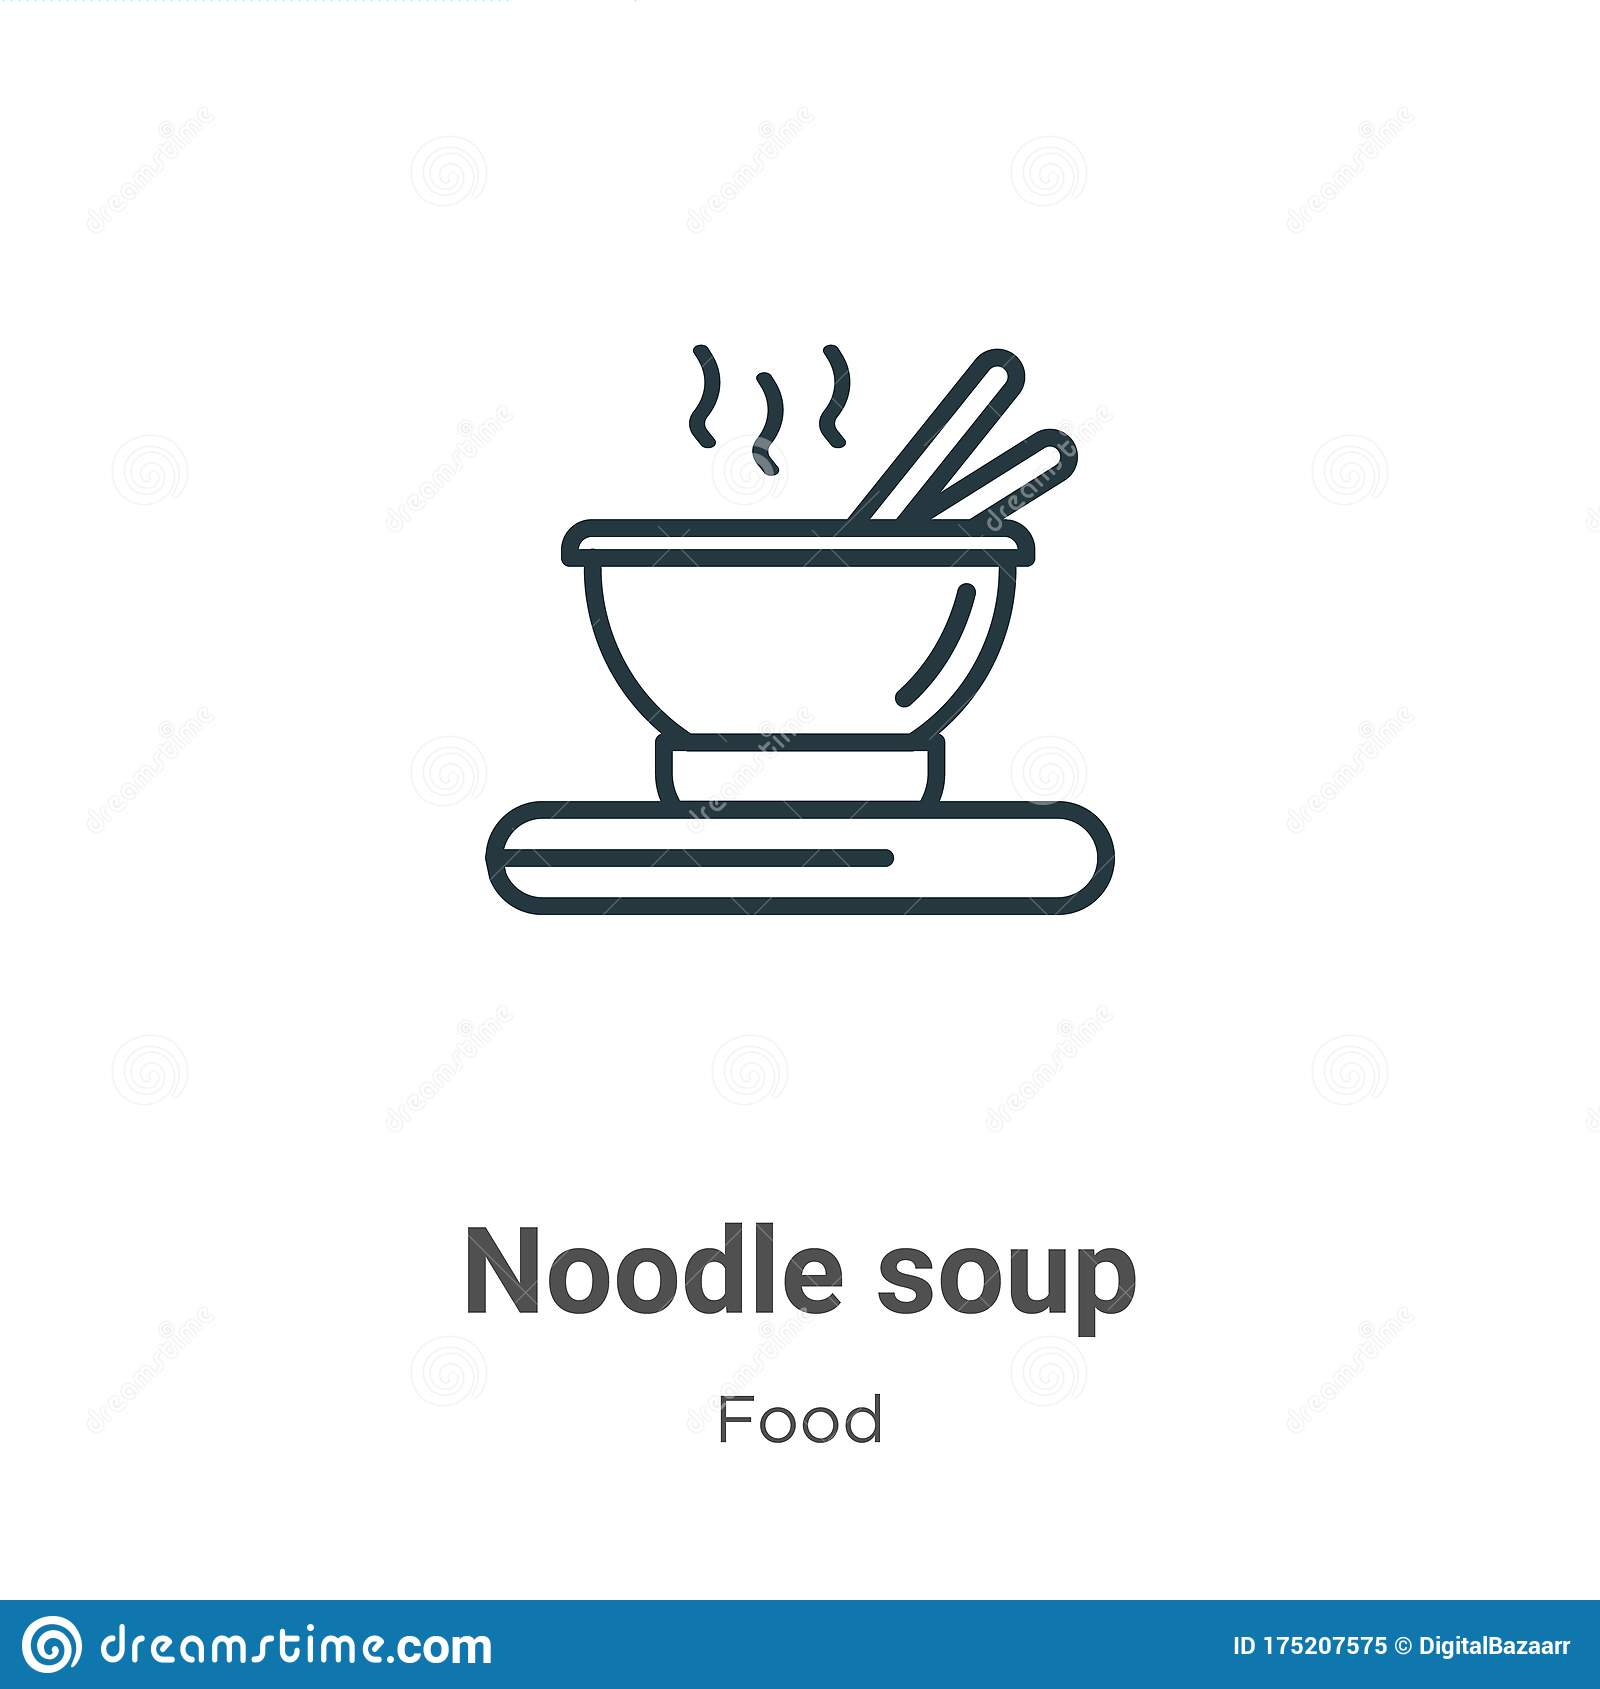 Noodle Soup Outline Vector Icon Thin Line Black Noodle Soup Icon Flat Vector Simple Element Illustration From Editable Food Stock Vector Illustration Of Bowl Delicious 175207575